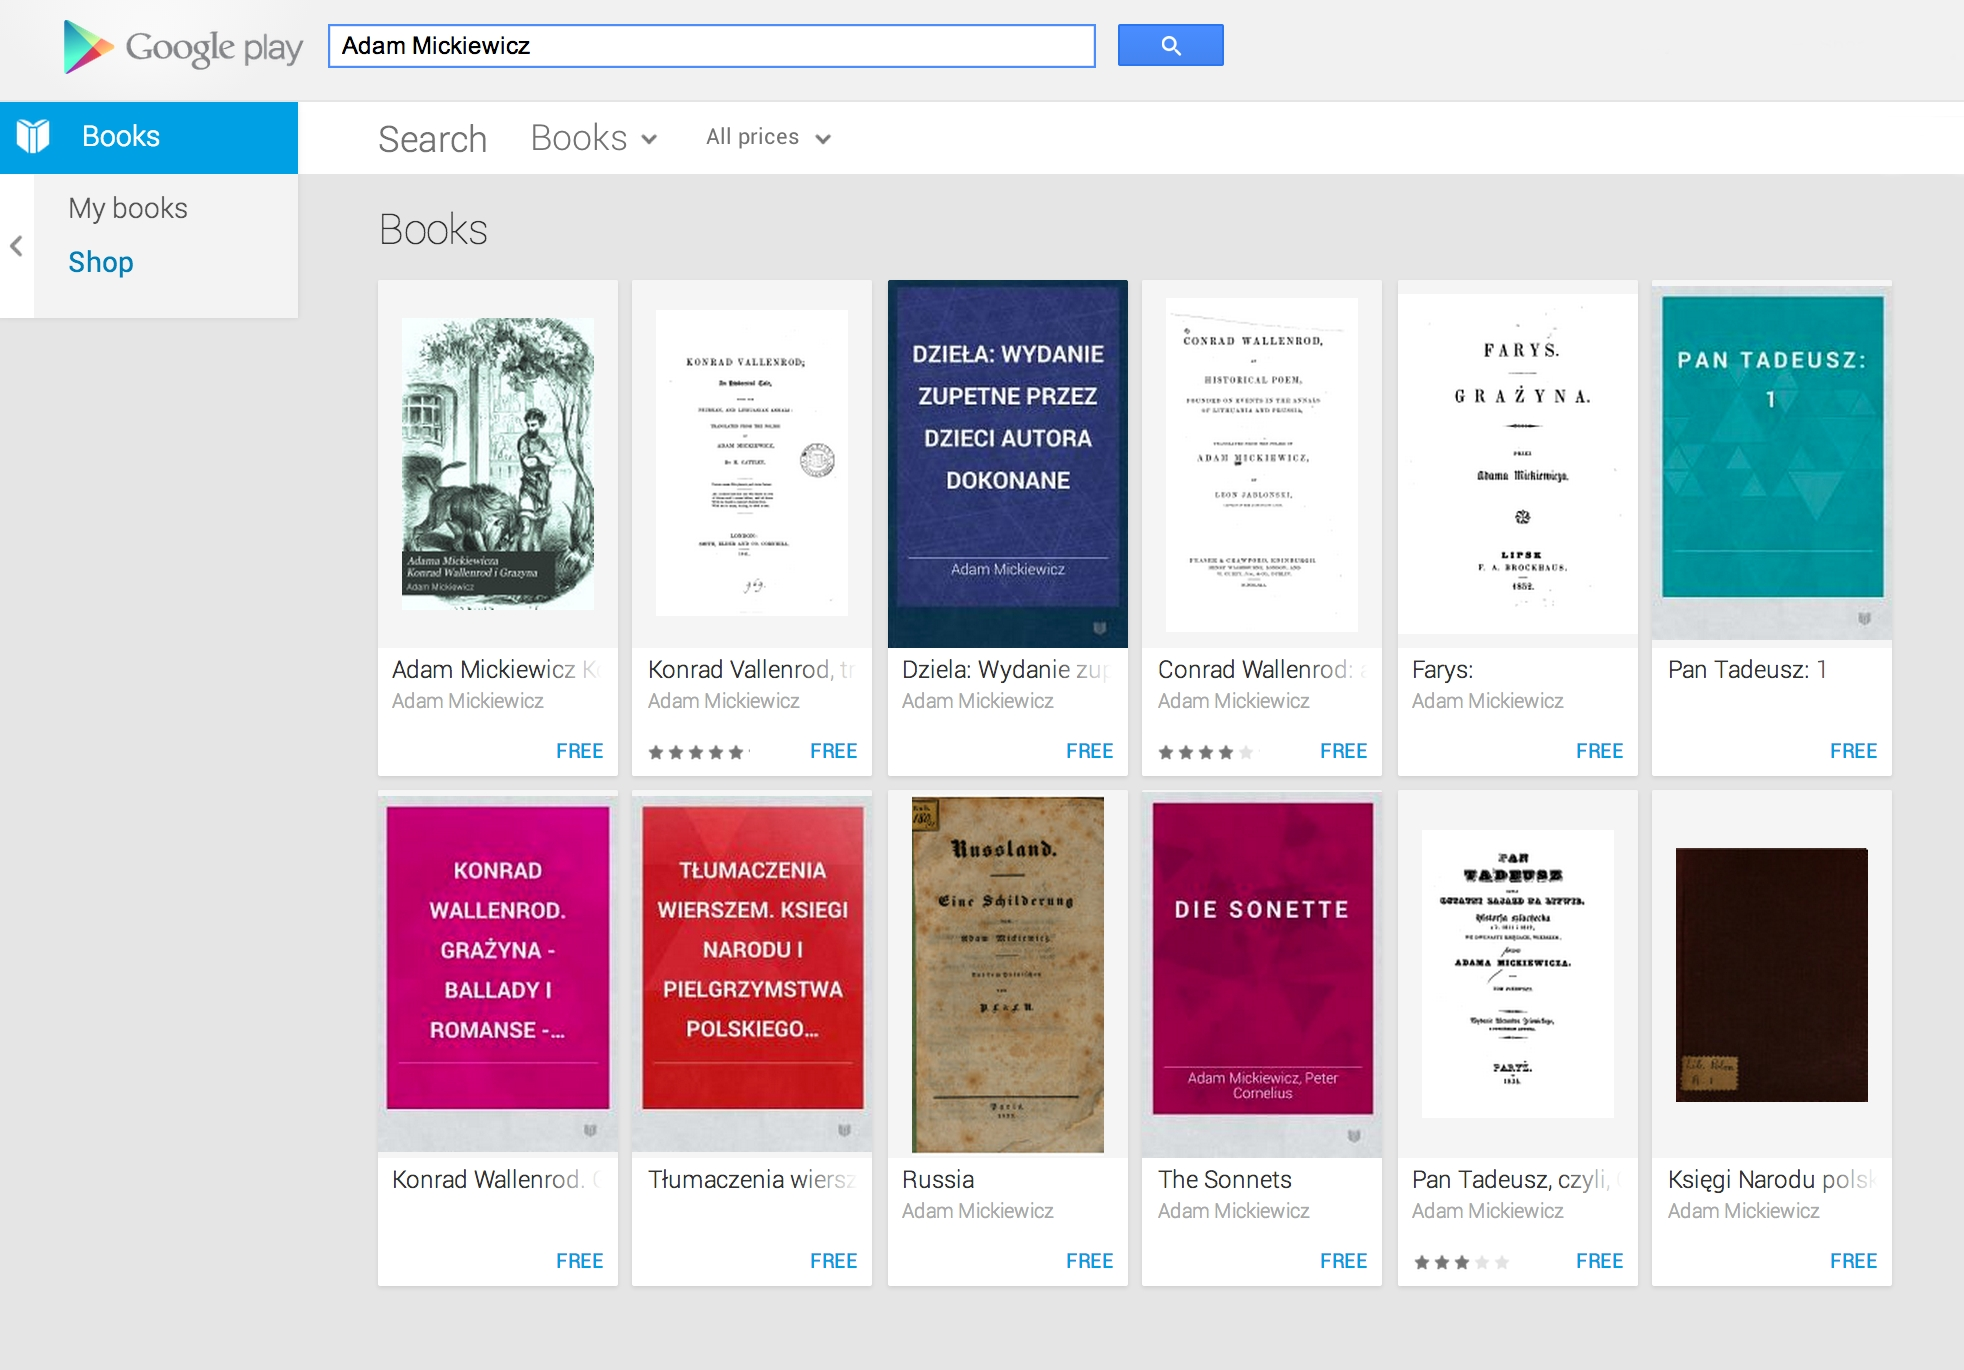 google play books language foreign ebooks finding launched poland thing check did many were